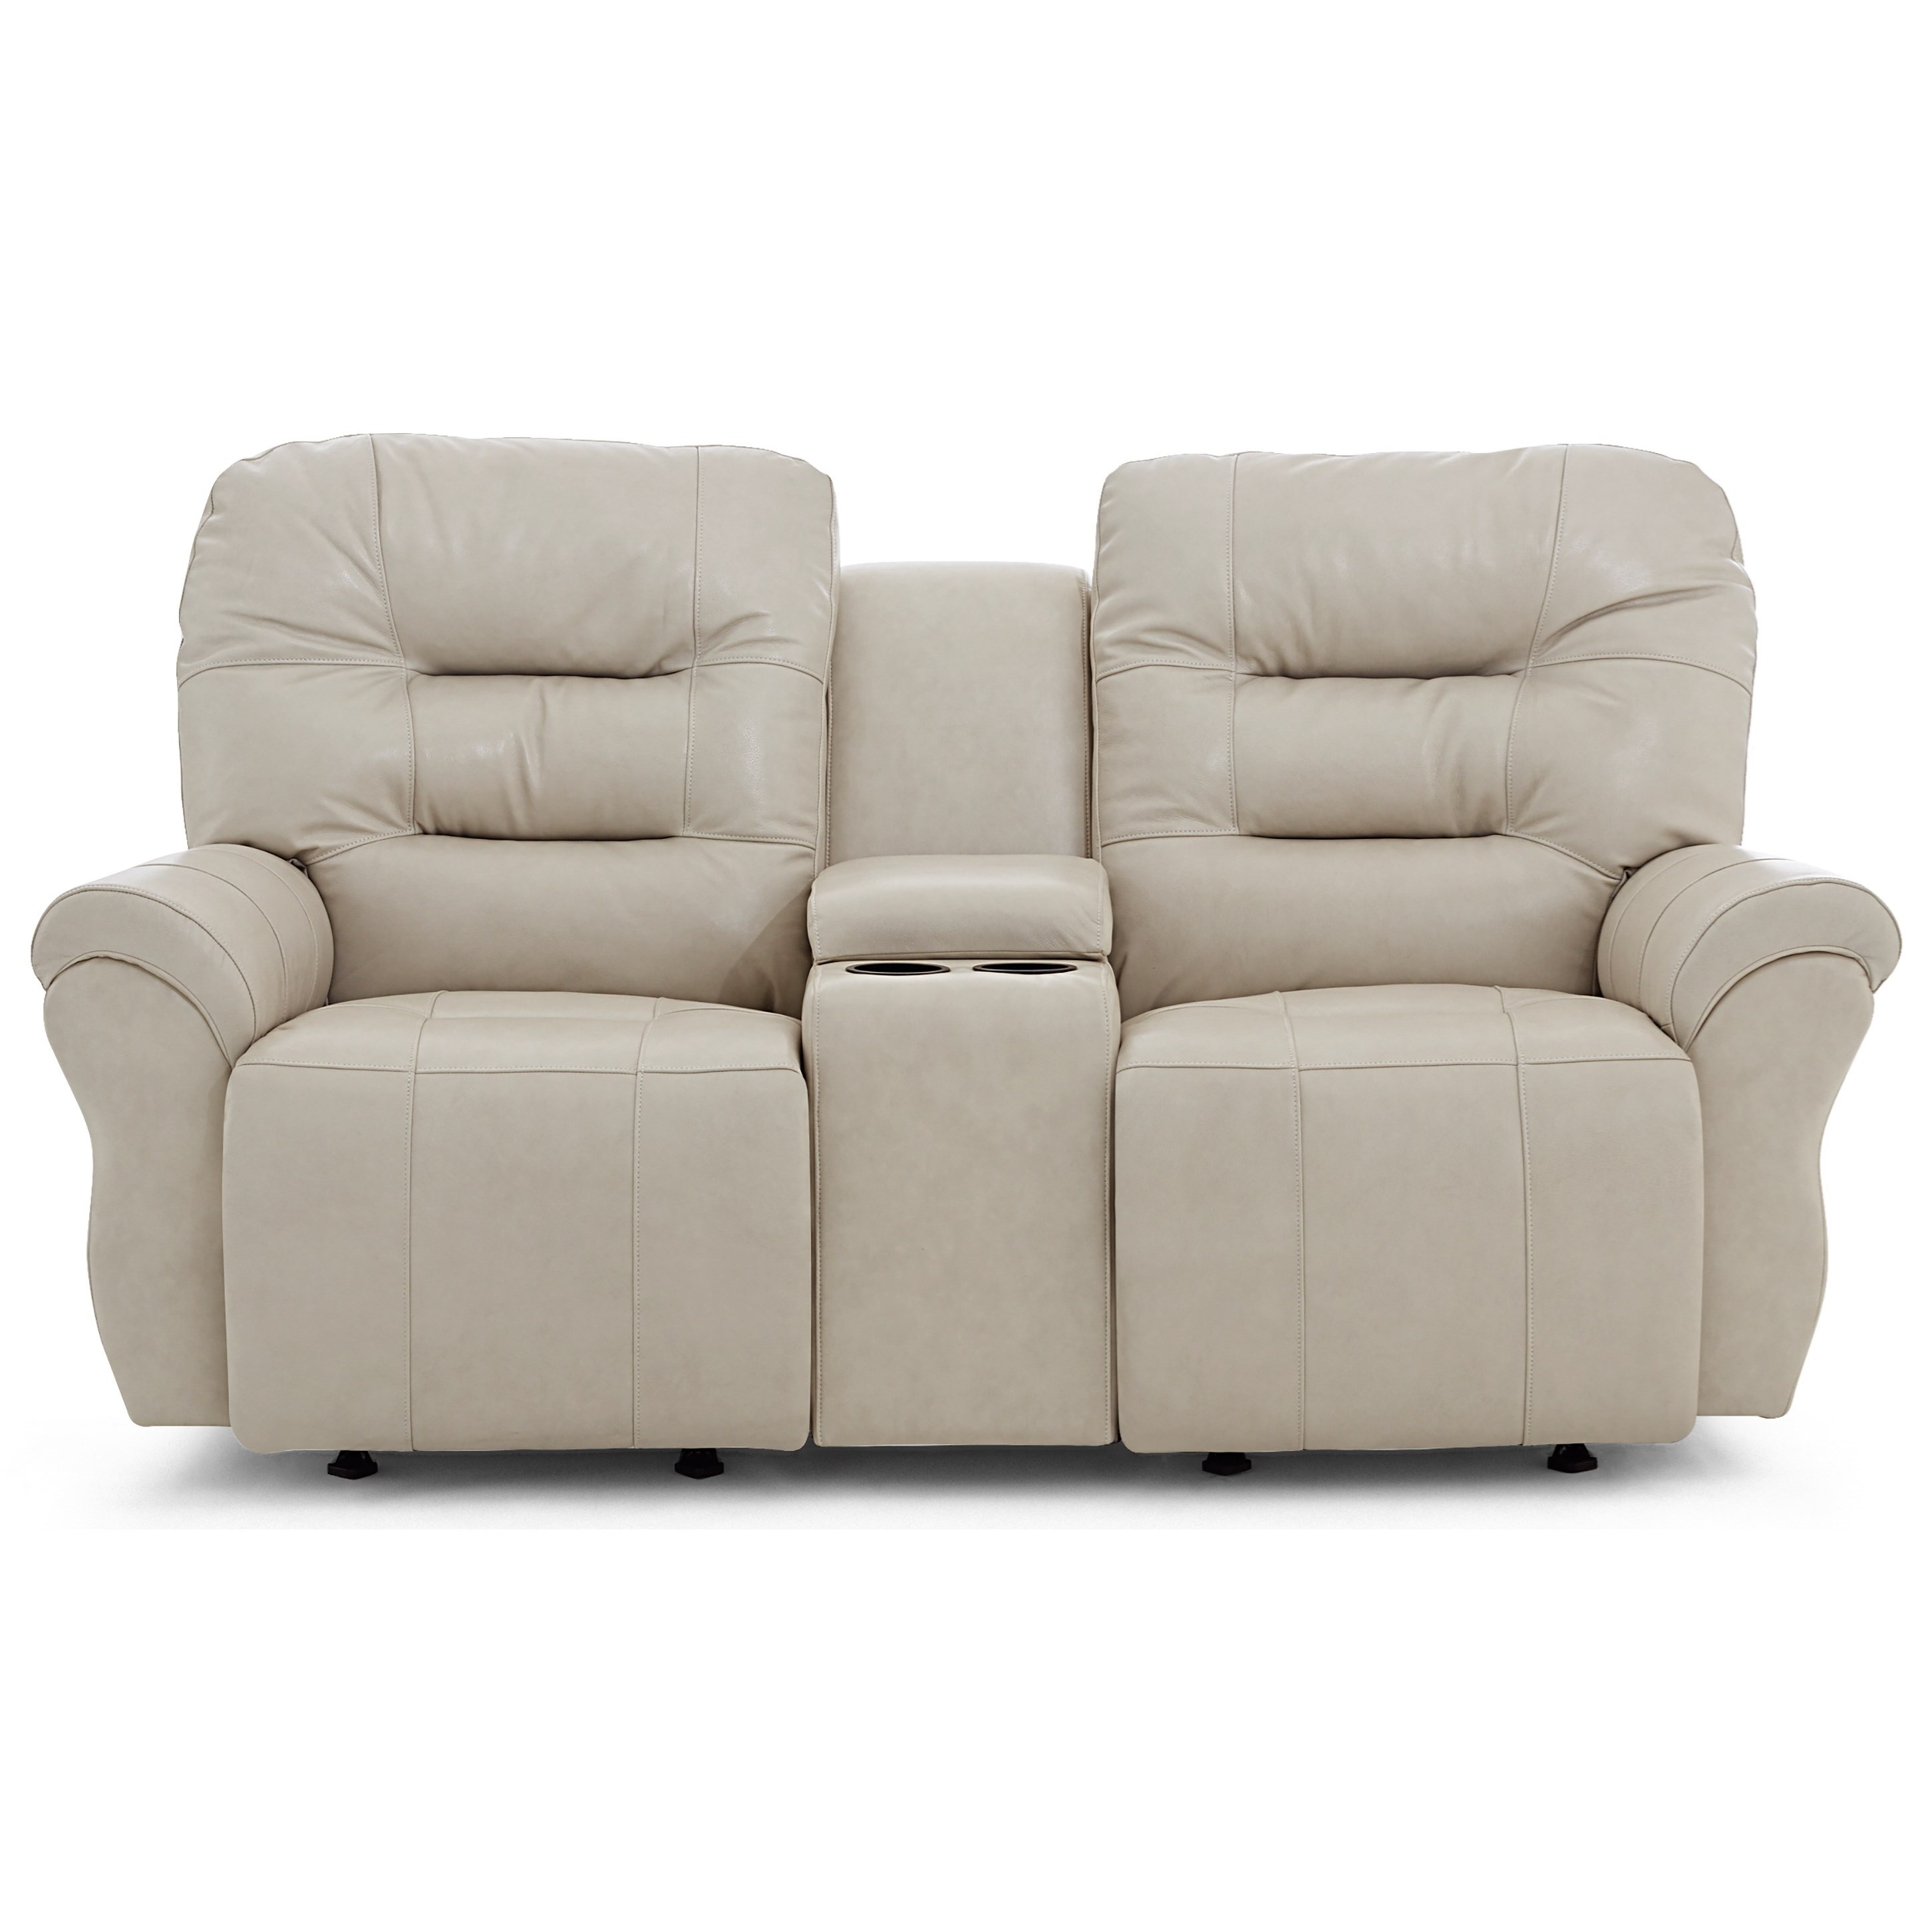 Unity Rocker Console Loveseat Chaise by Best Home Furnishings at Baer's Furniture